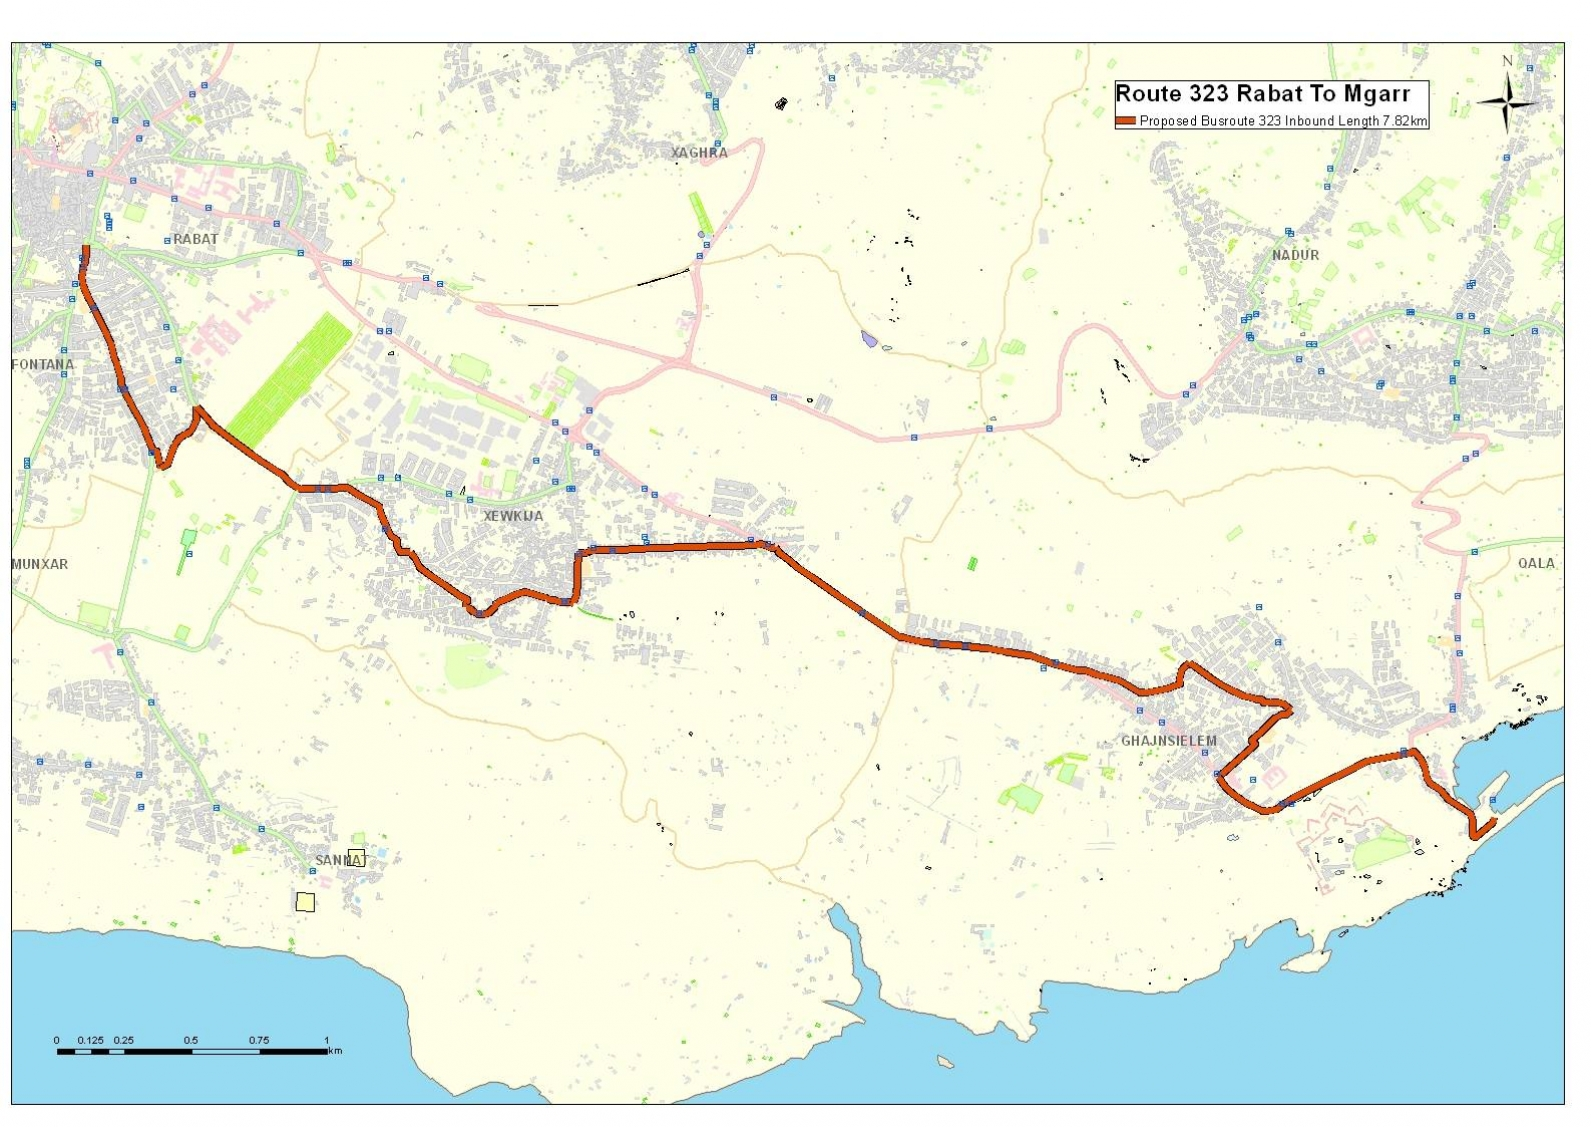 Land-current-network-routes-and-schedules-Gozo-29